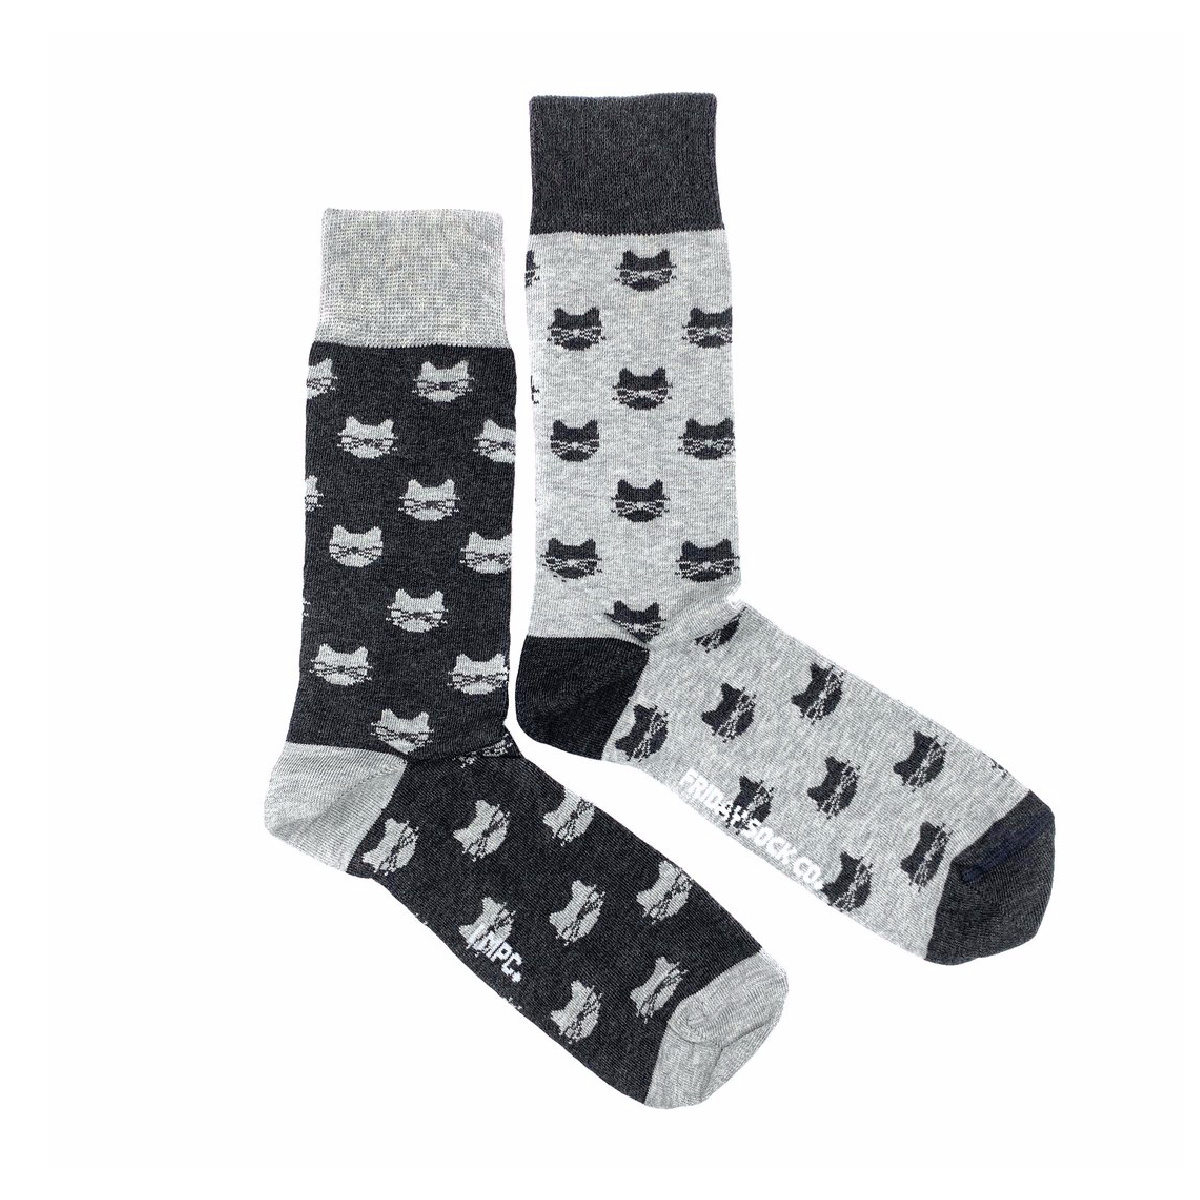 Friday Sock Co. Friday Sock Co. Women's Inverted Grey Cat  W 5 - 10 (M - 4 - 8)